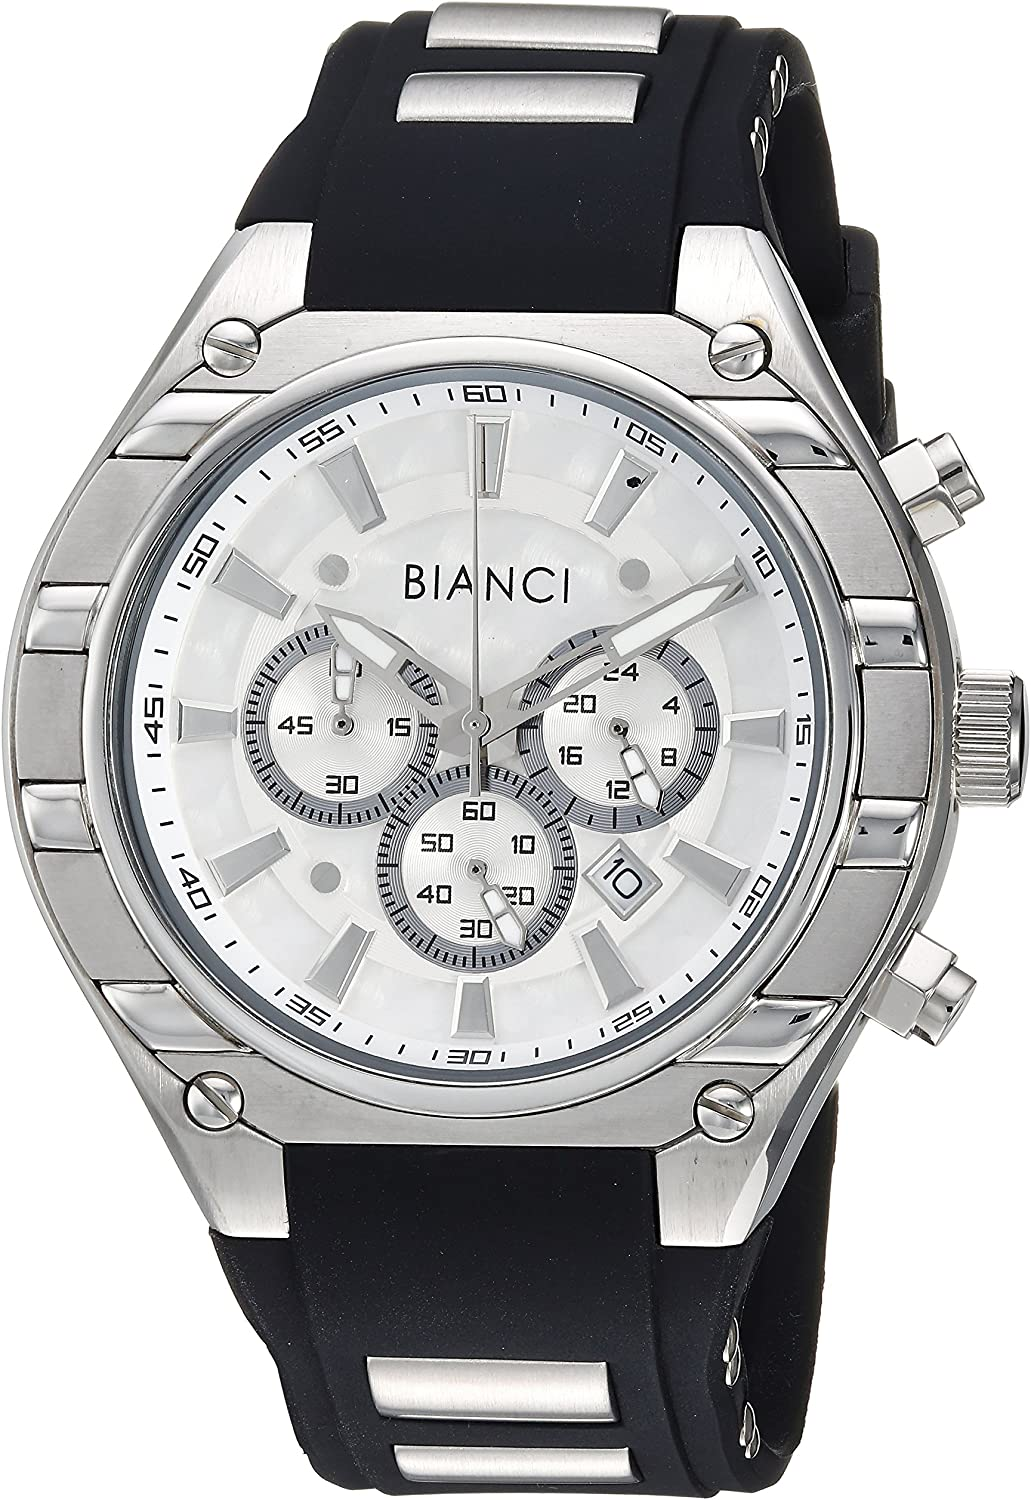 ROBERTO BIANCI WATCHES Men's Ameglio Stainless Steel Quartz Watch with Silicone Strap, Black, 23.5 (Model: RB54442)